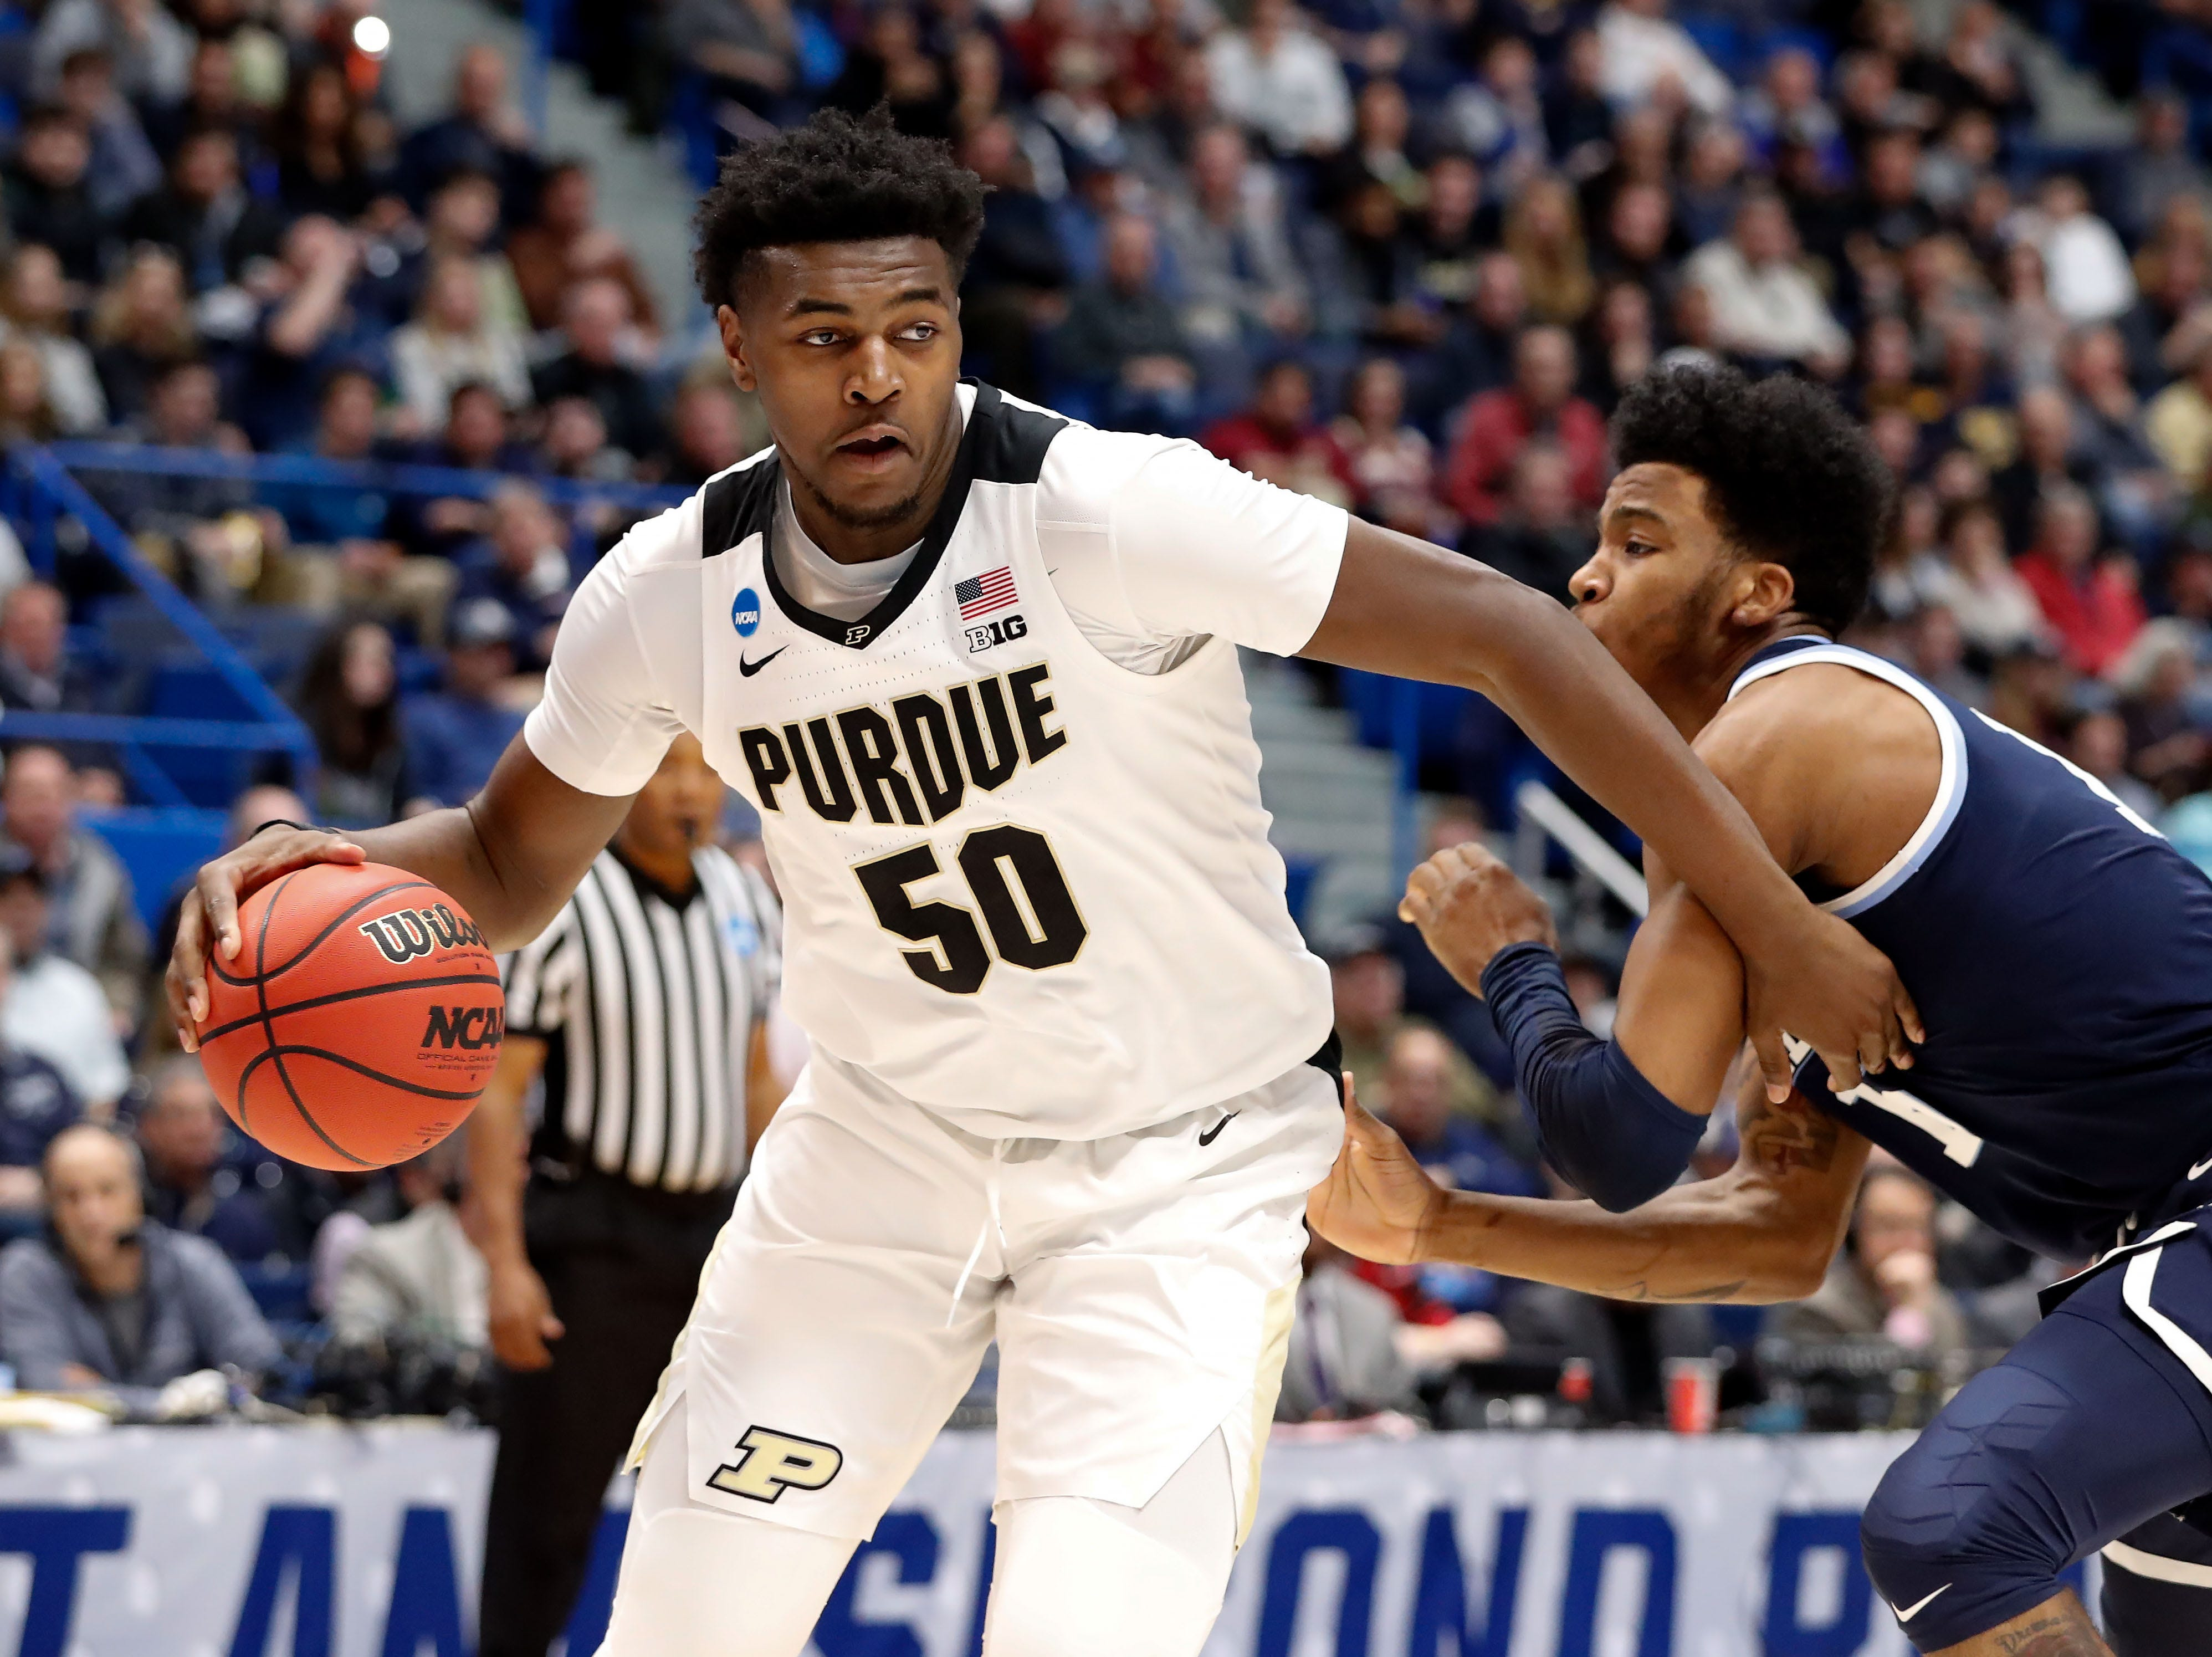 Mar 23, 2019; Hartford, CT, USA; Purdue Boilermakers forward Trevion Williams (50) controls the ball against the Villanova Wildcats during the first half of a game in the second round of the 2019 NCAA Tournament at XL Center. Mandatory Credit: David Butler II-USA TODAY Sports